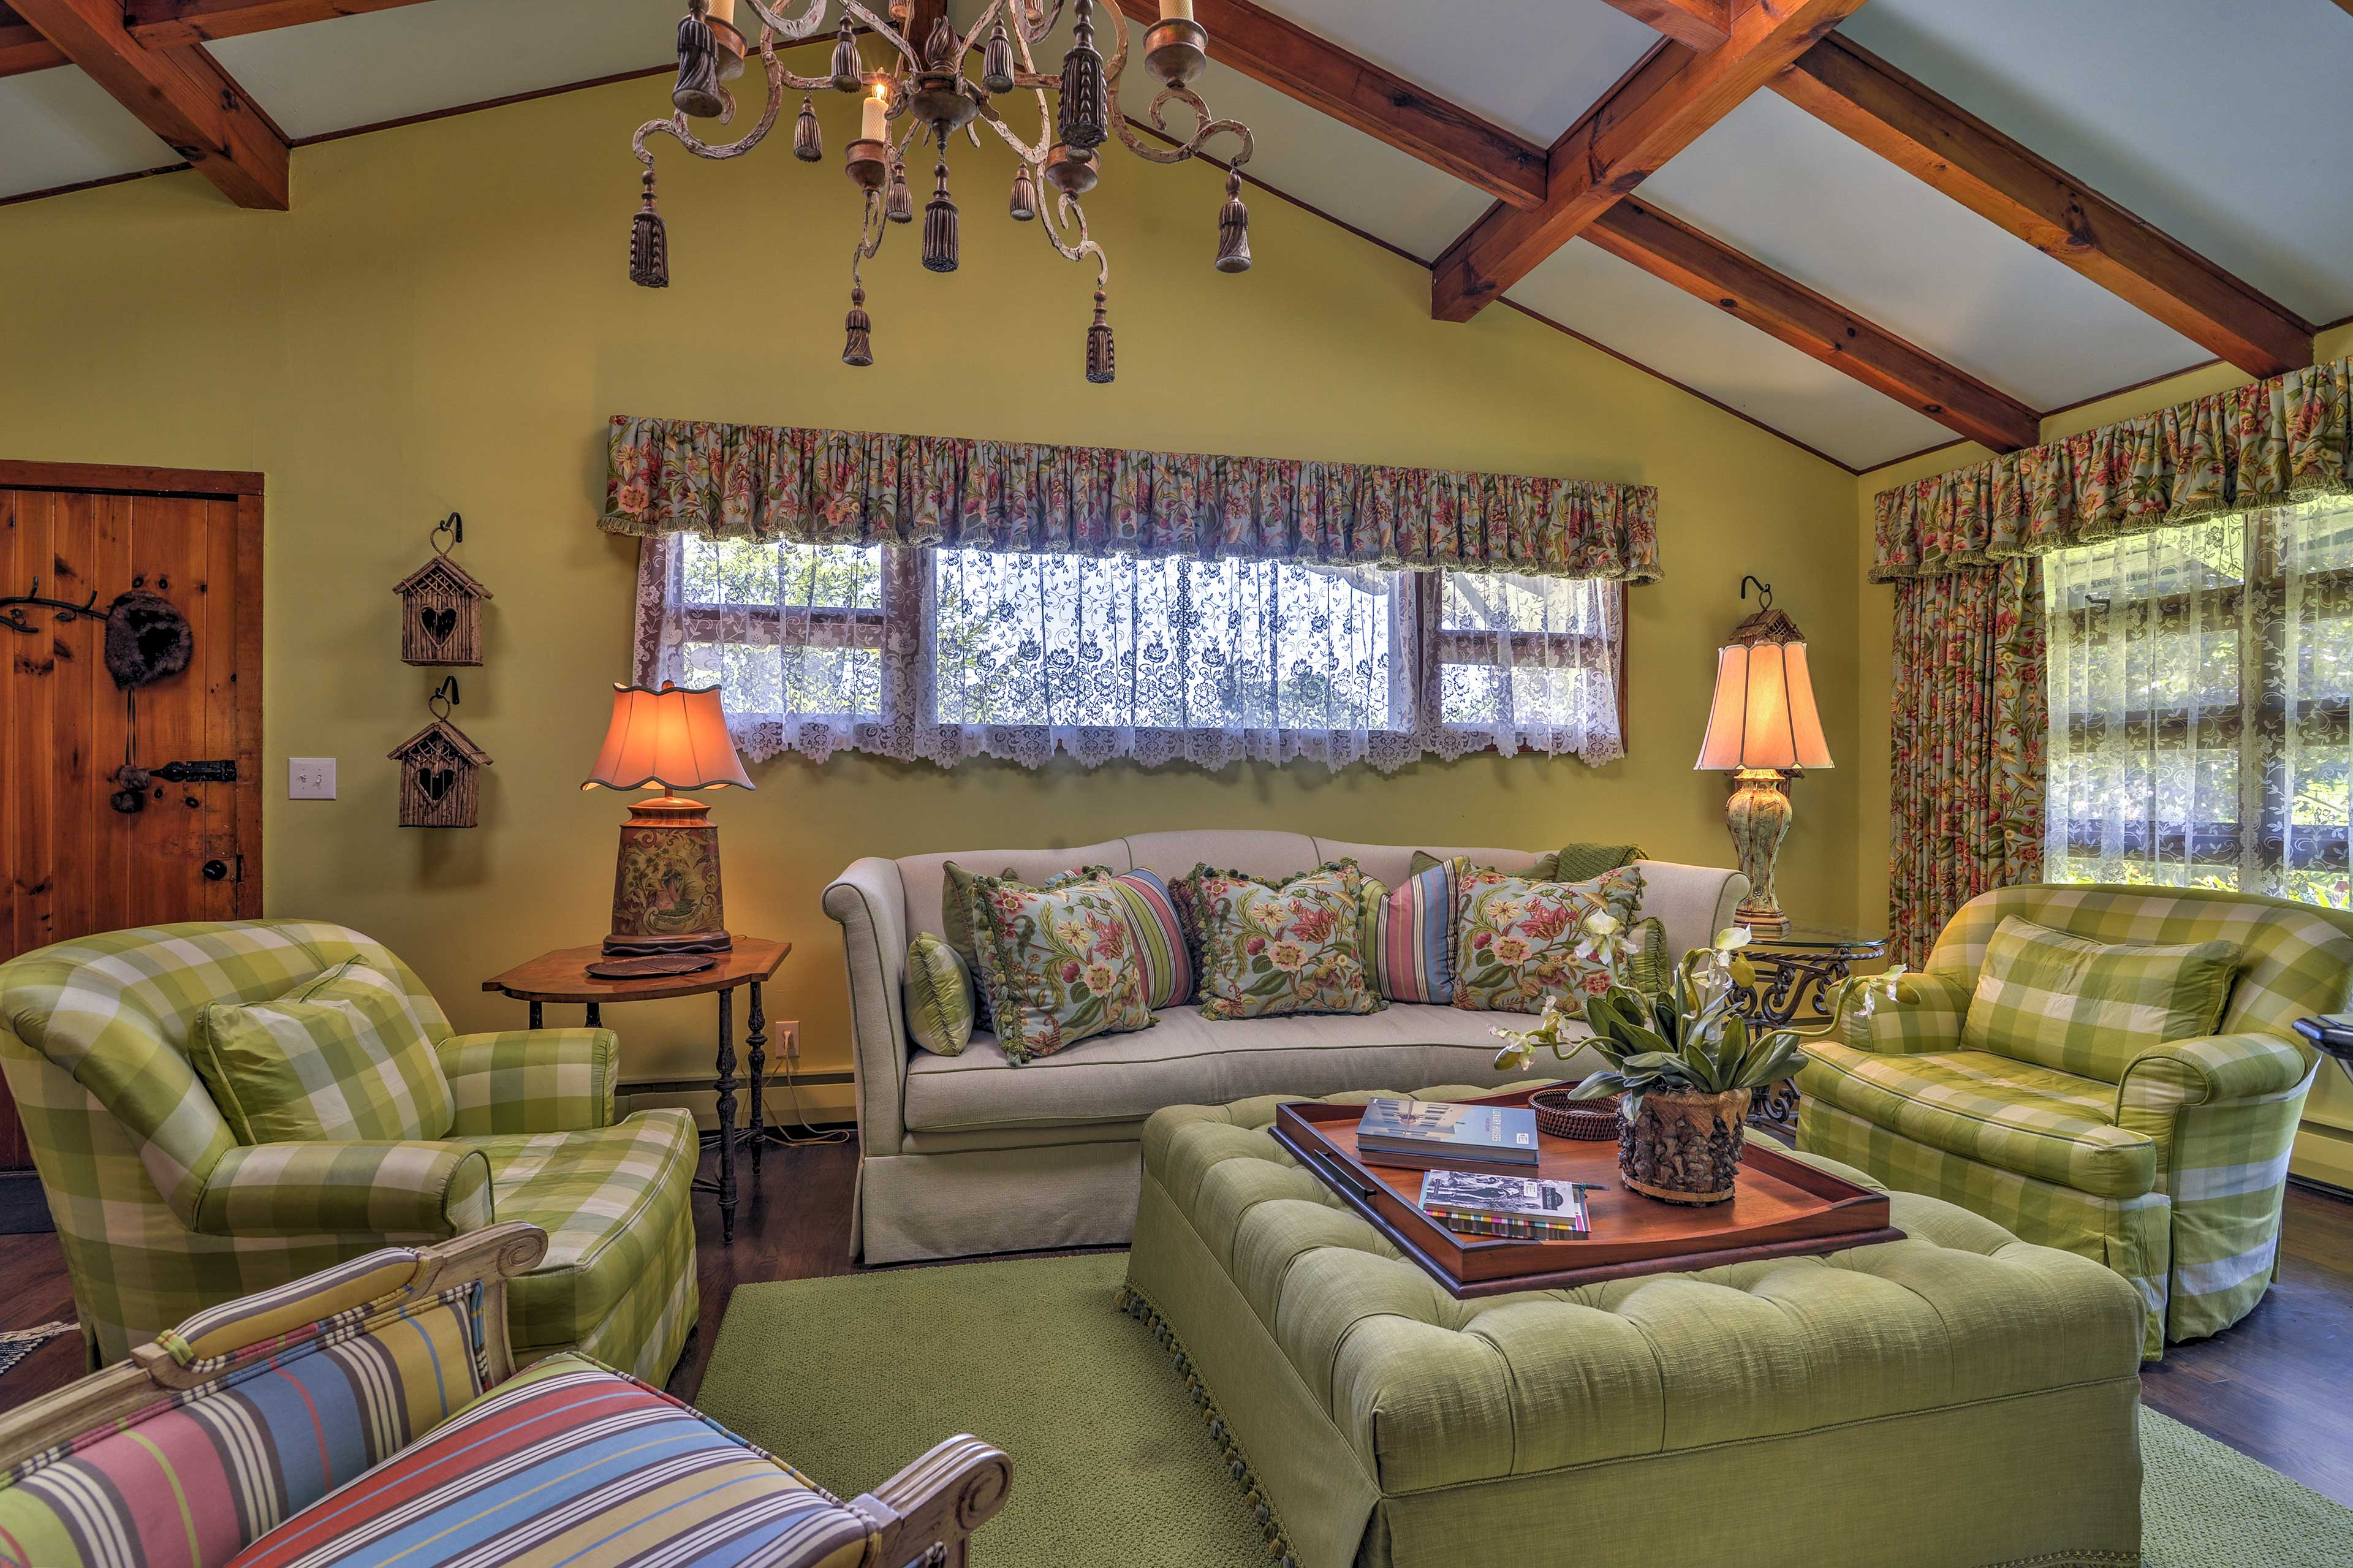 The vibrant living room is filled with one-of-a-kind pieces.